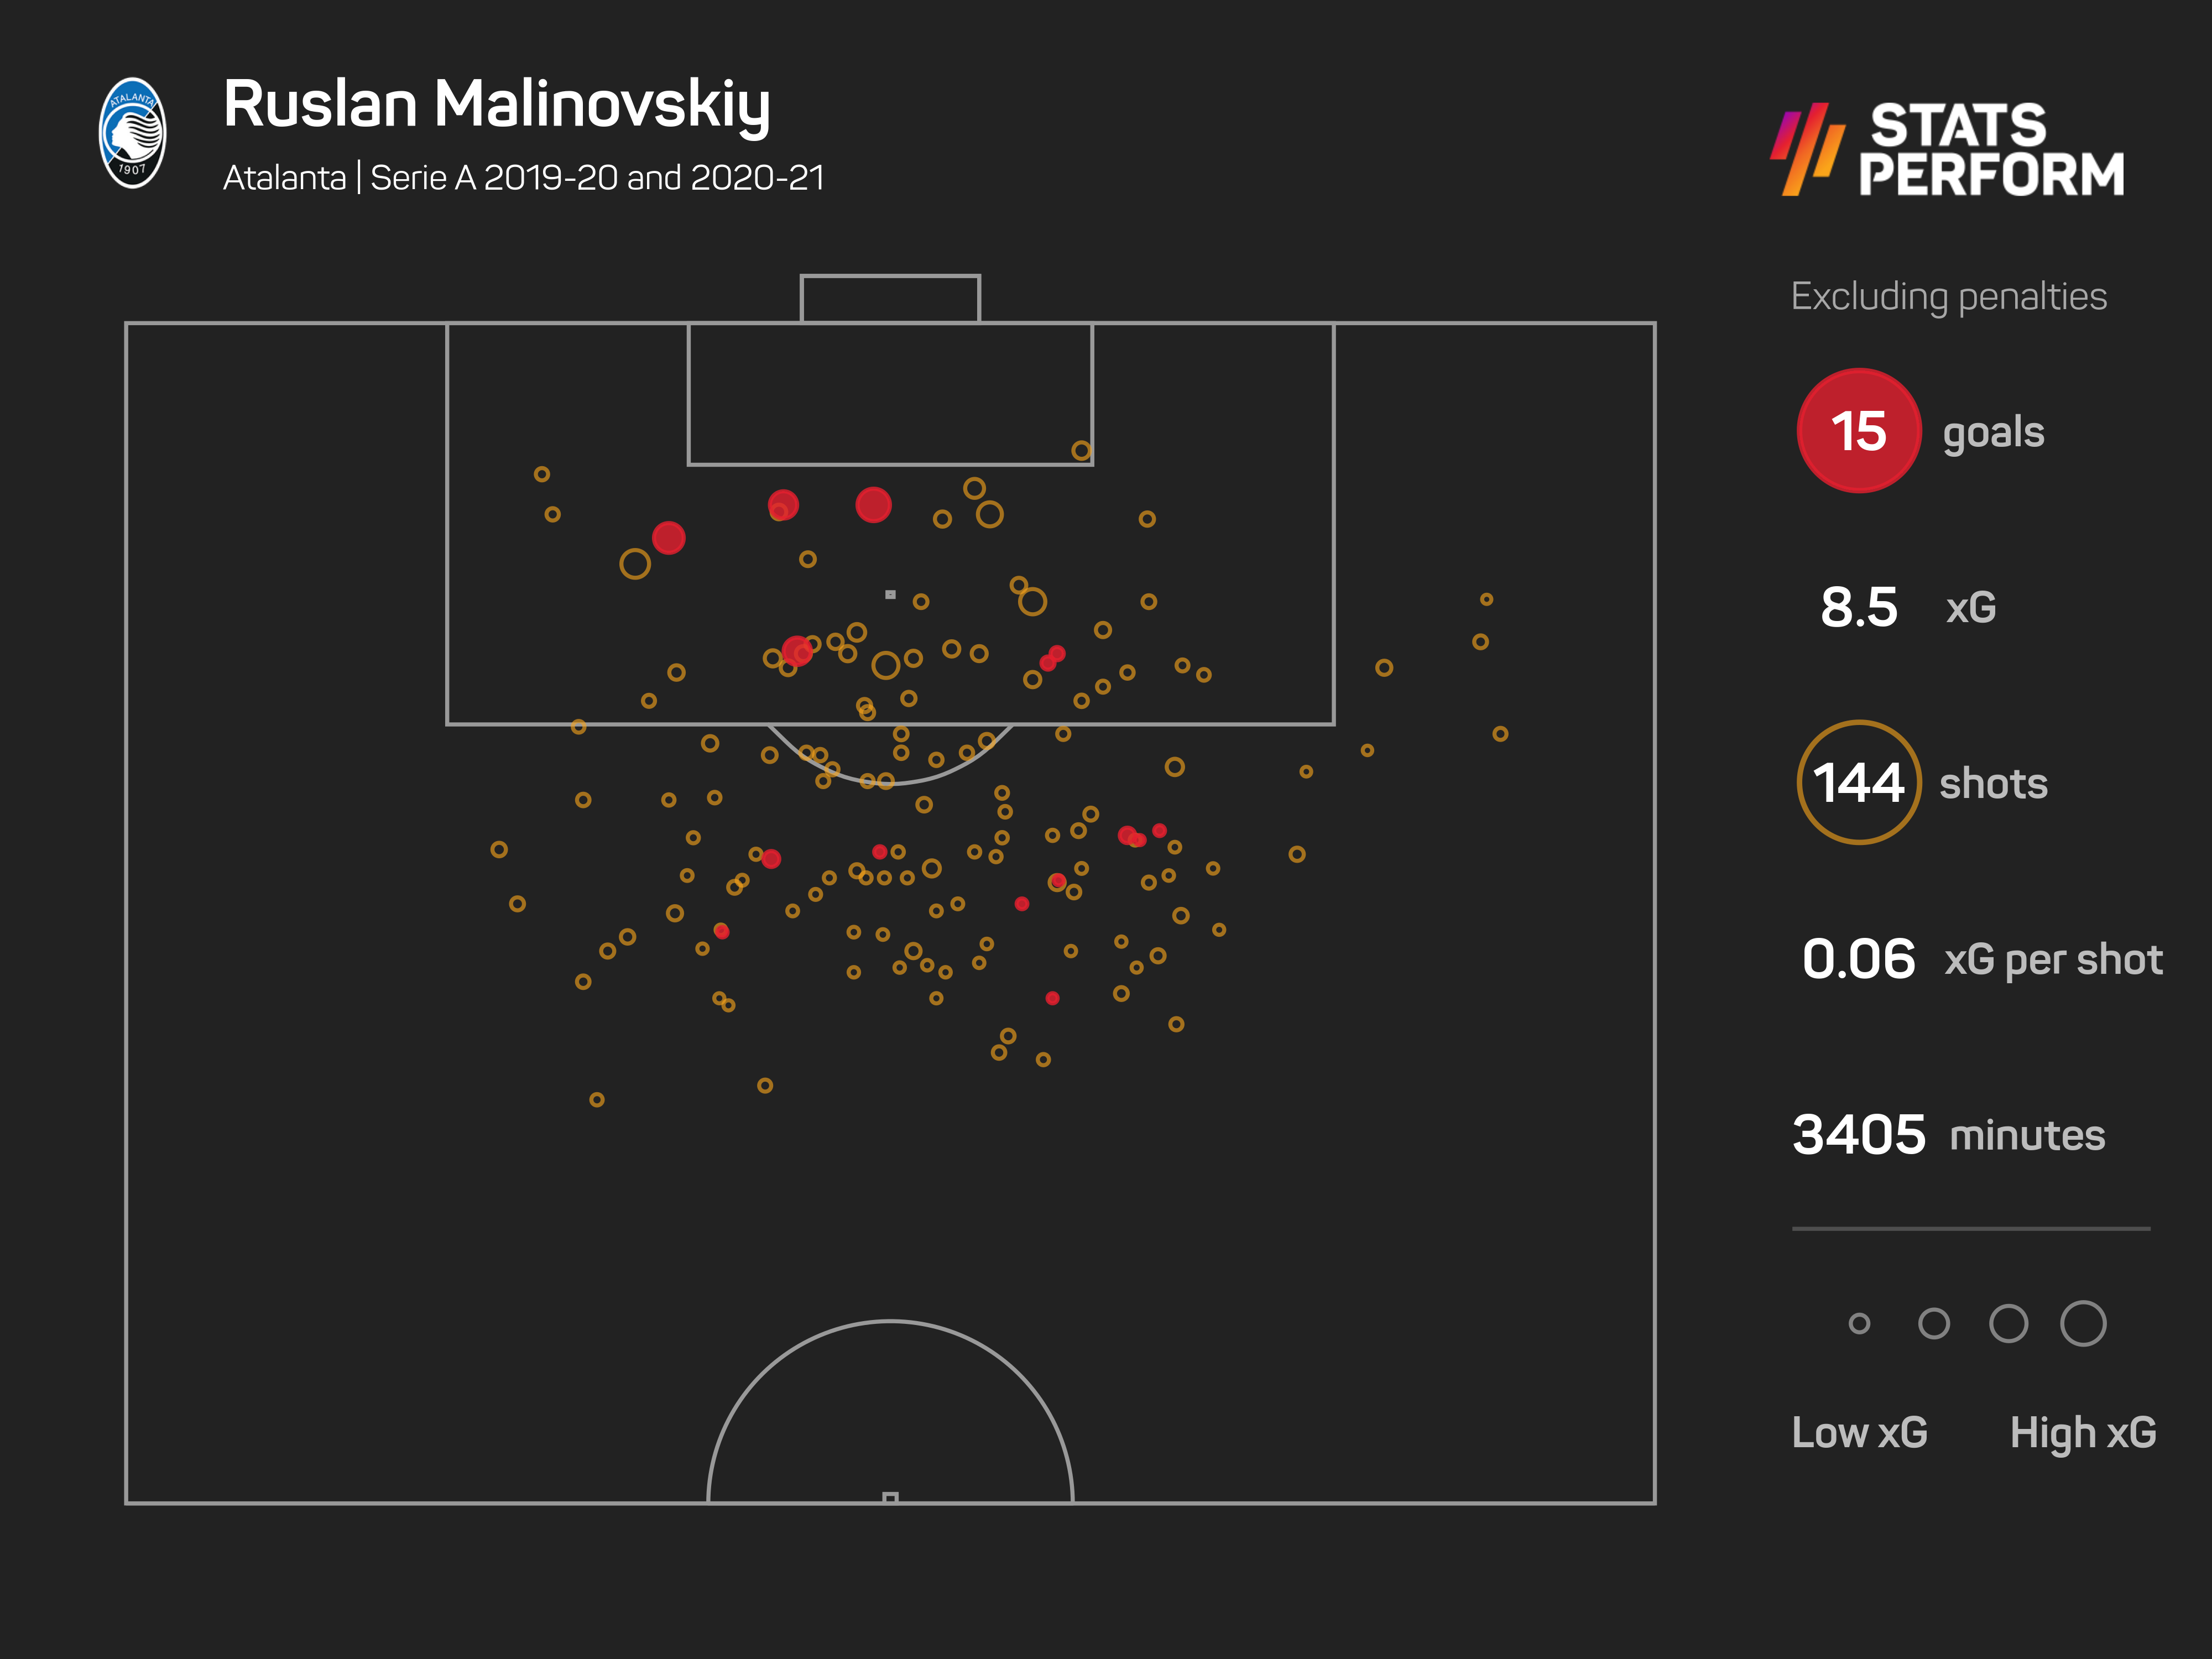 Malinovskiy has also proven a source of goals over the past two years